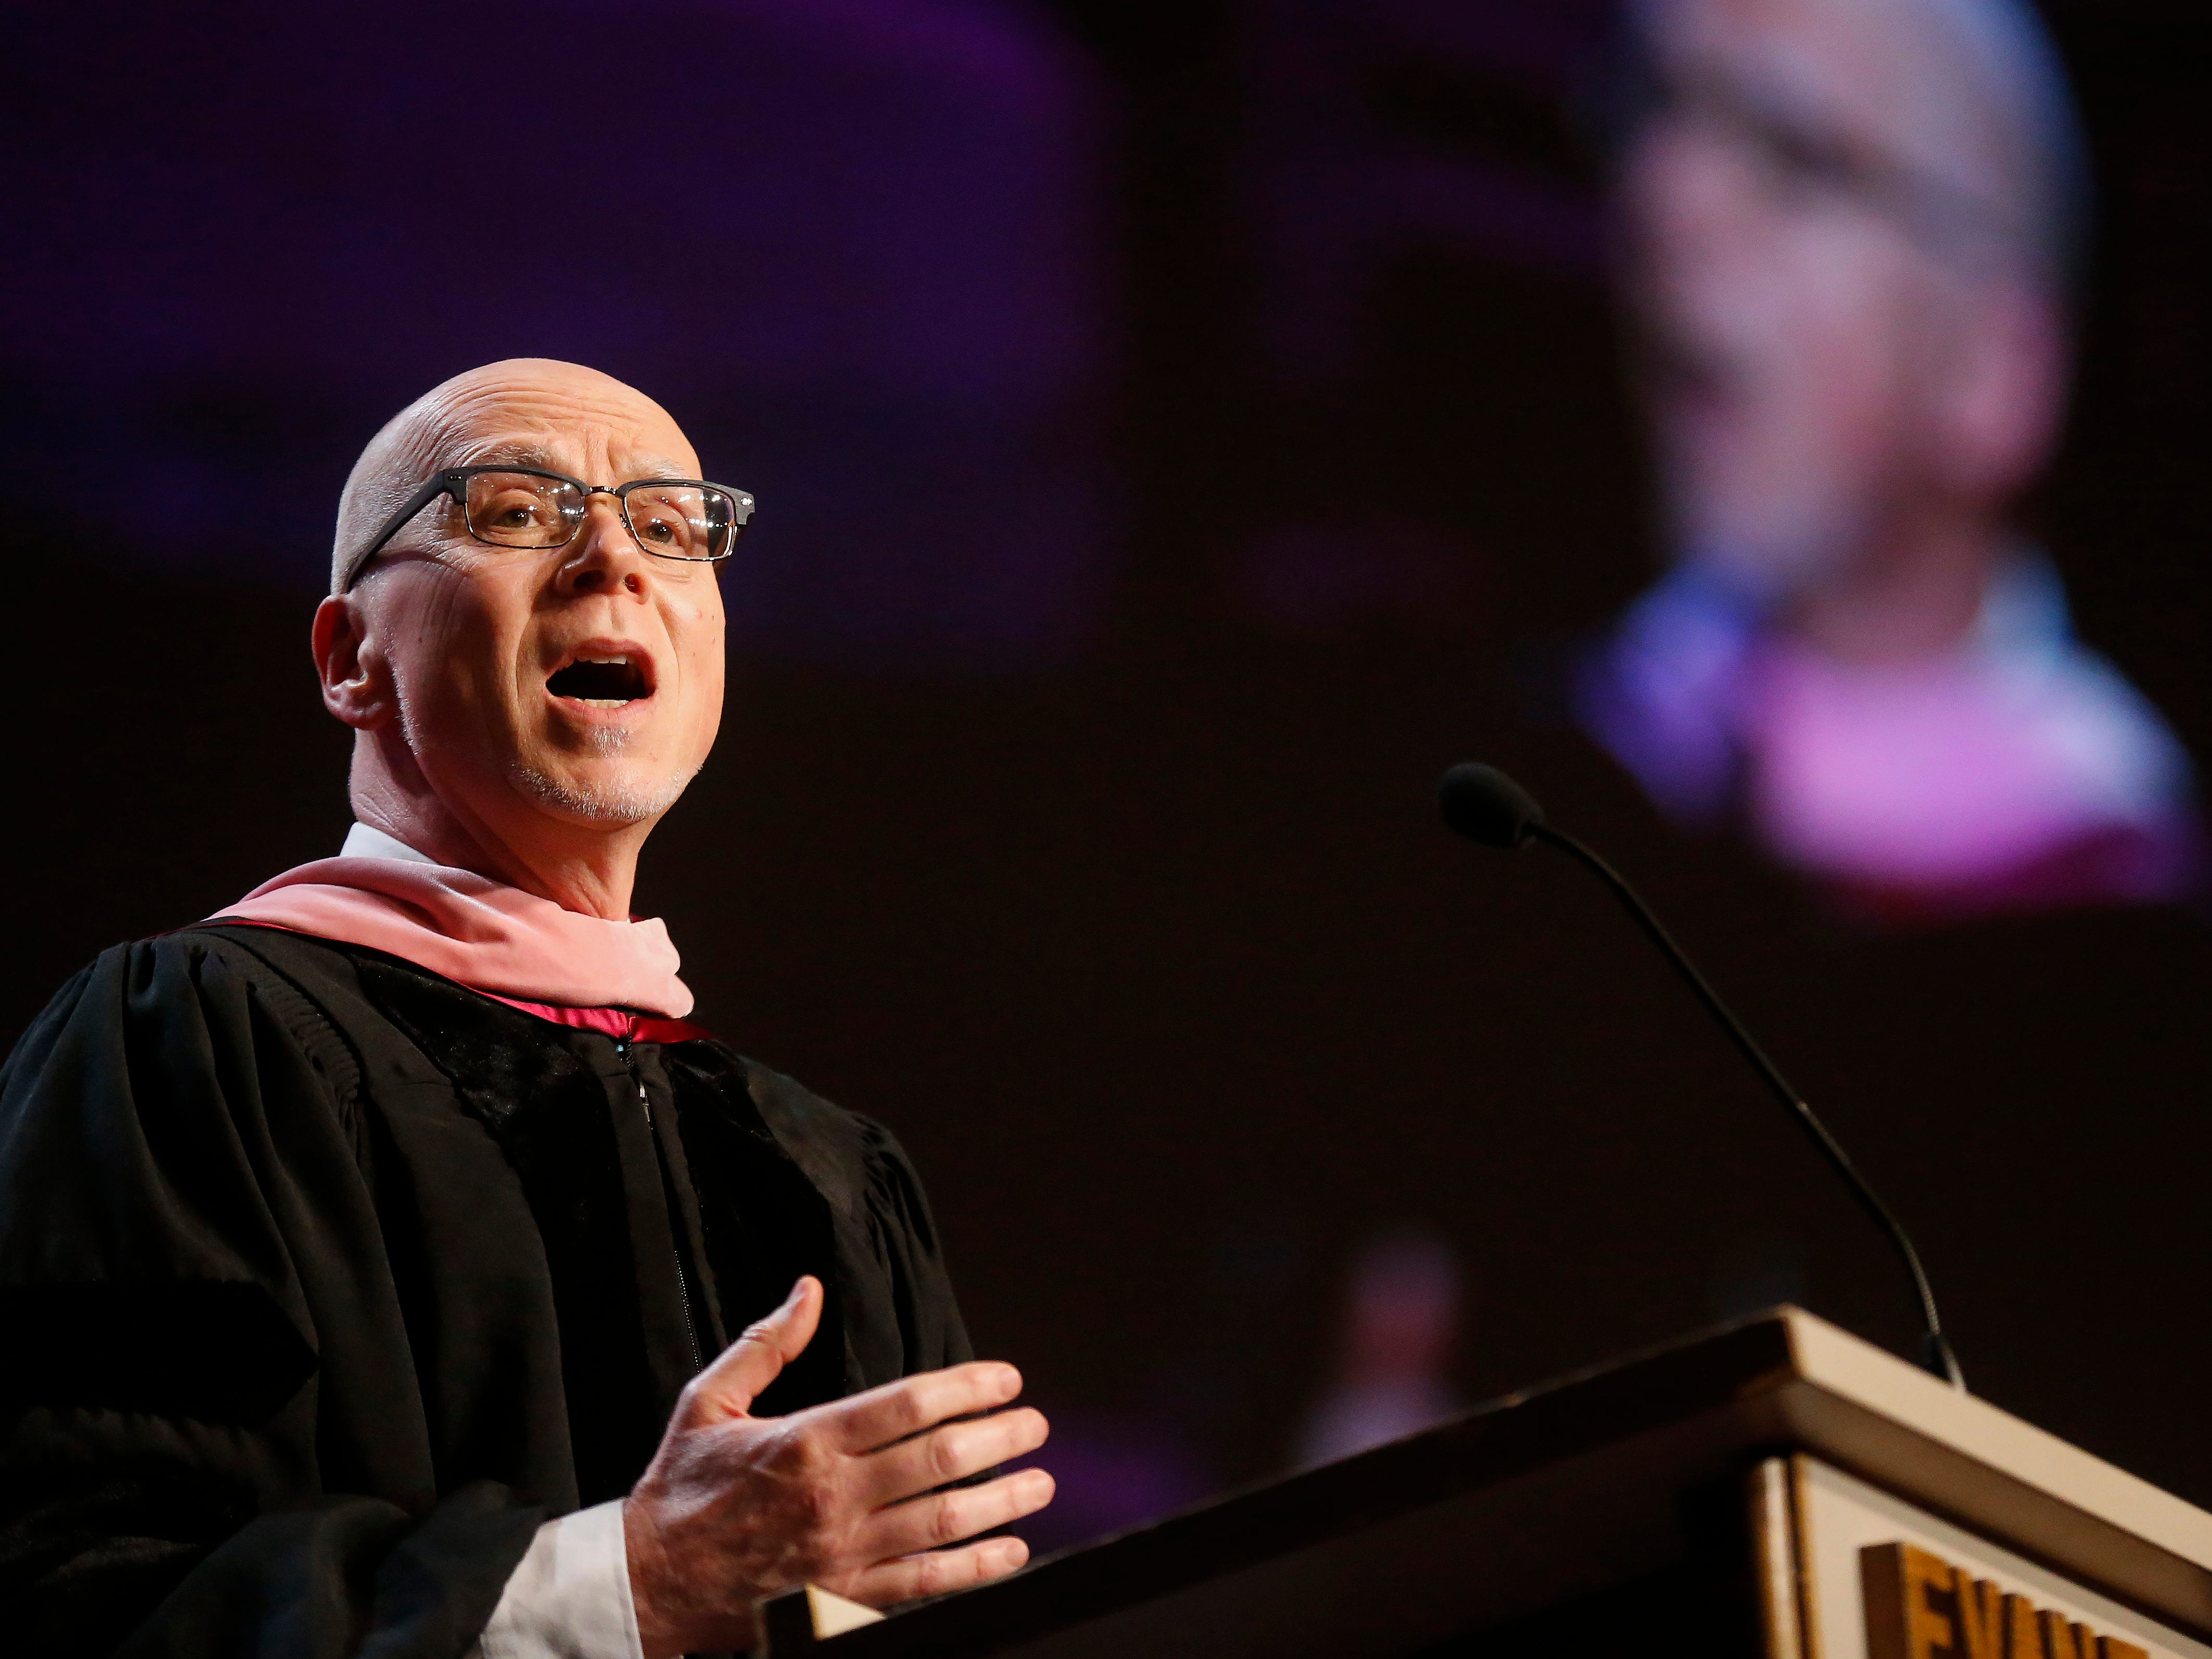 Thomas Matrone leads the crowd in a song during Evangel University's 2019 Commencement Ceremony at James River Church in Ozark on Friday, May 3, 2019.